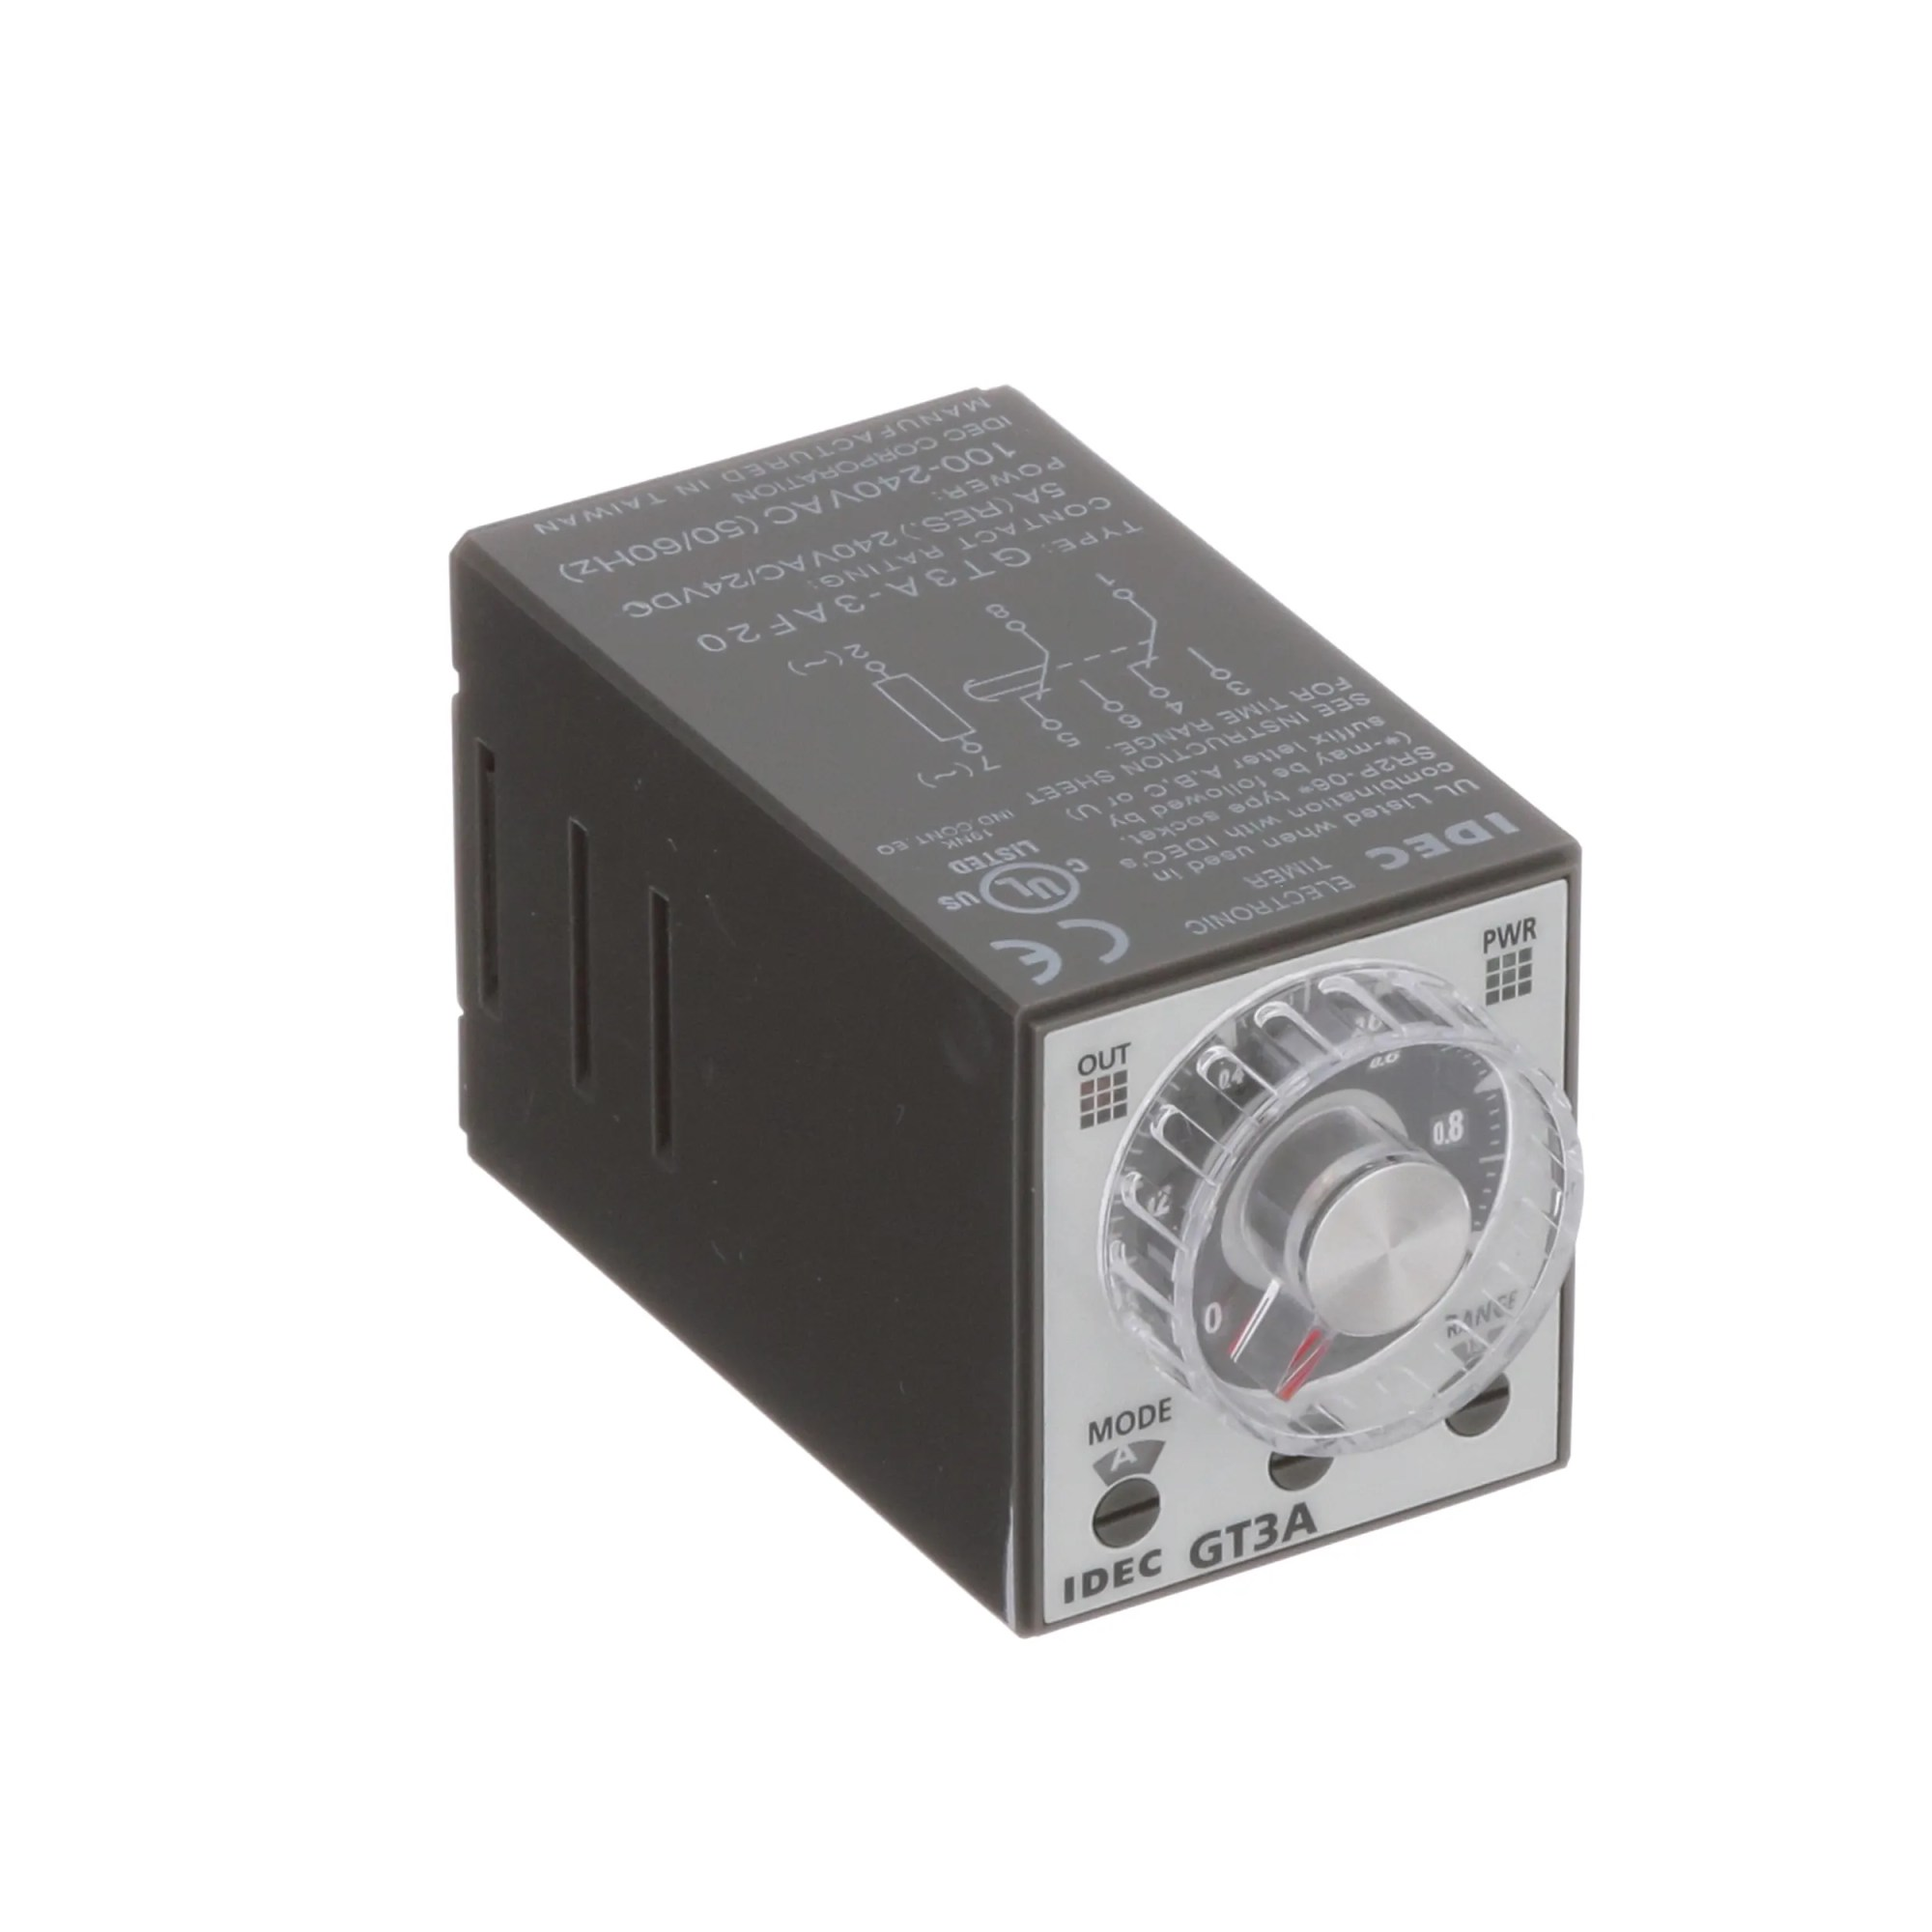 hight resolution of idec corporation gt3a 3af20 relay e mech timing multimode dpdt cur rtg 5a ctrl v 100 240ac 250vac socket mnt allied electronics automation